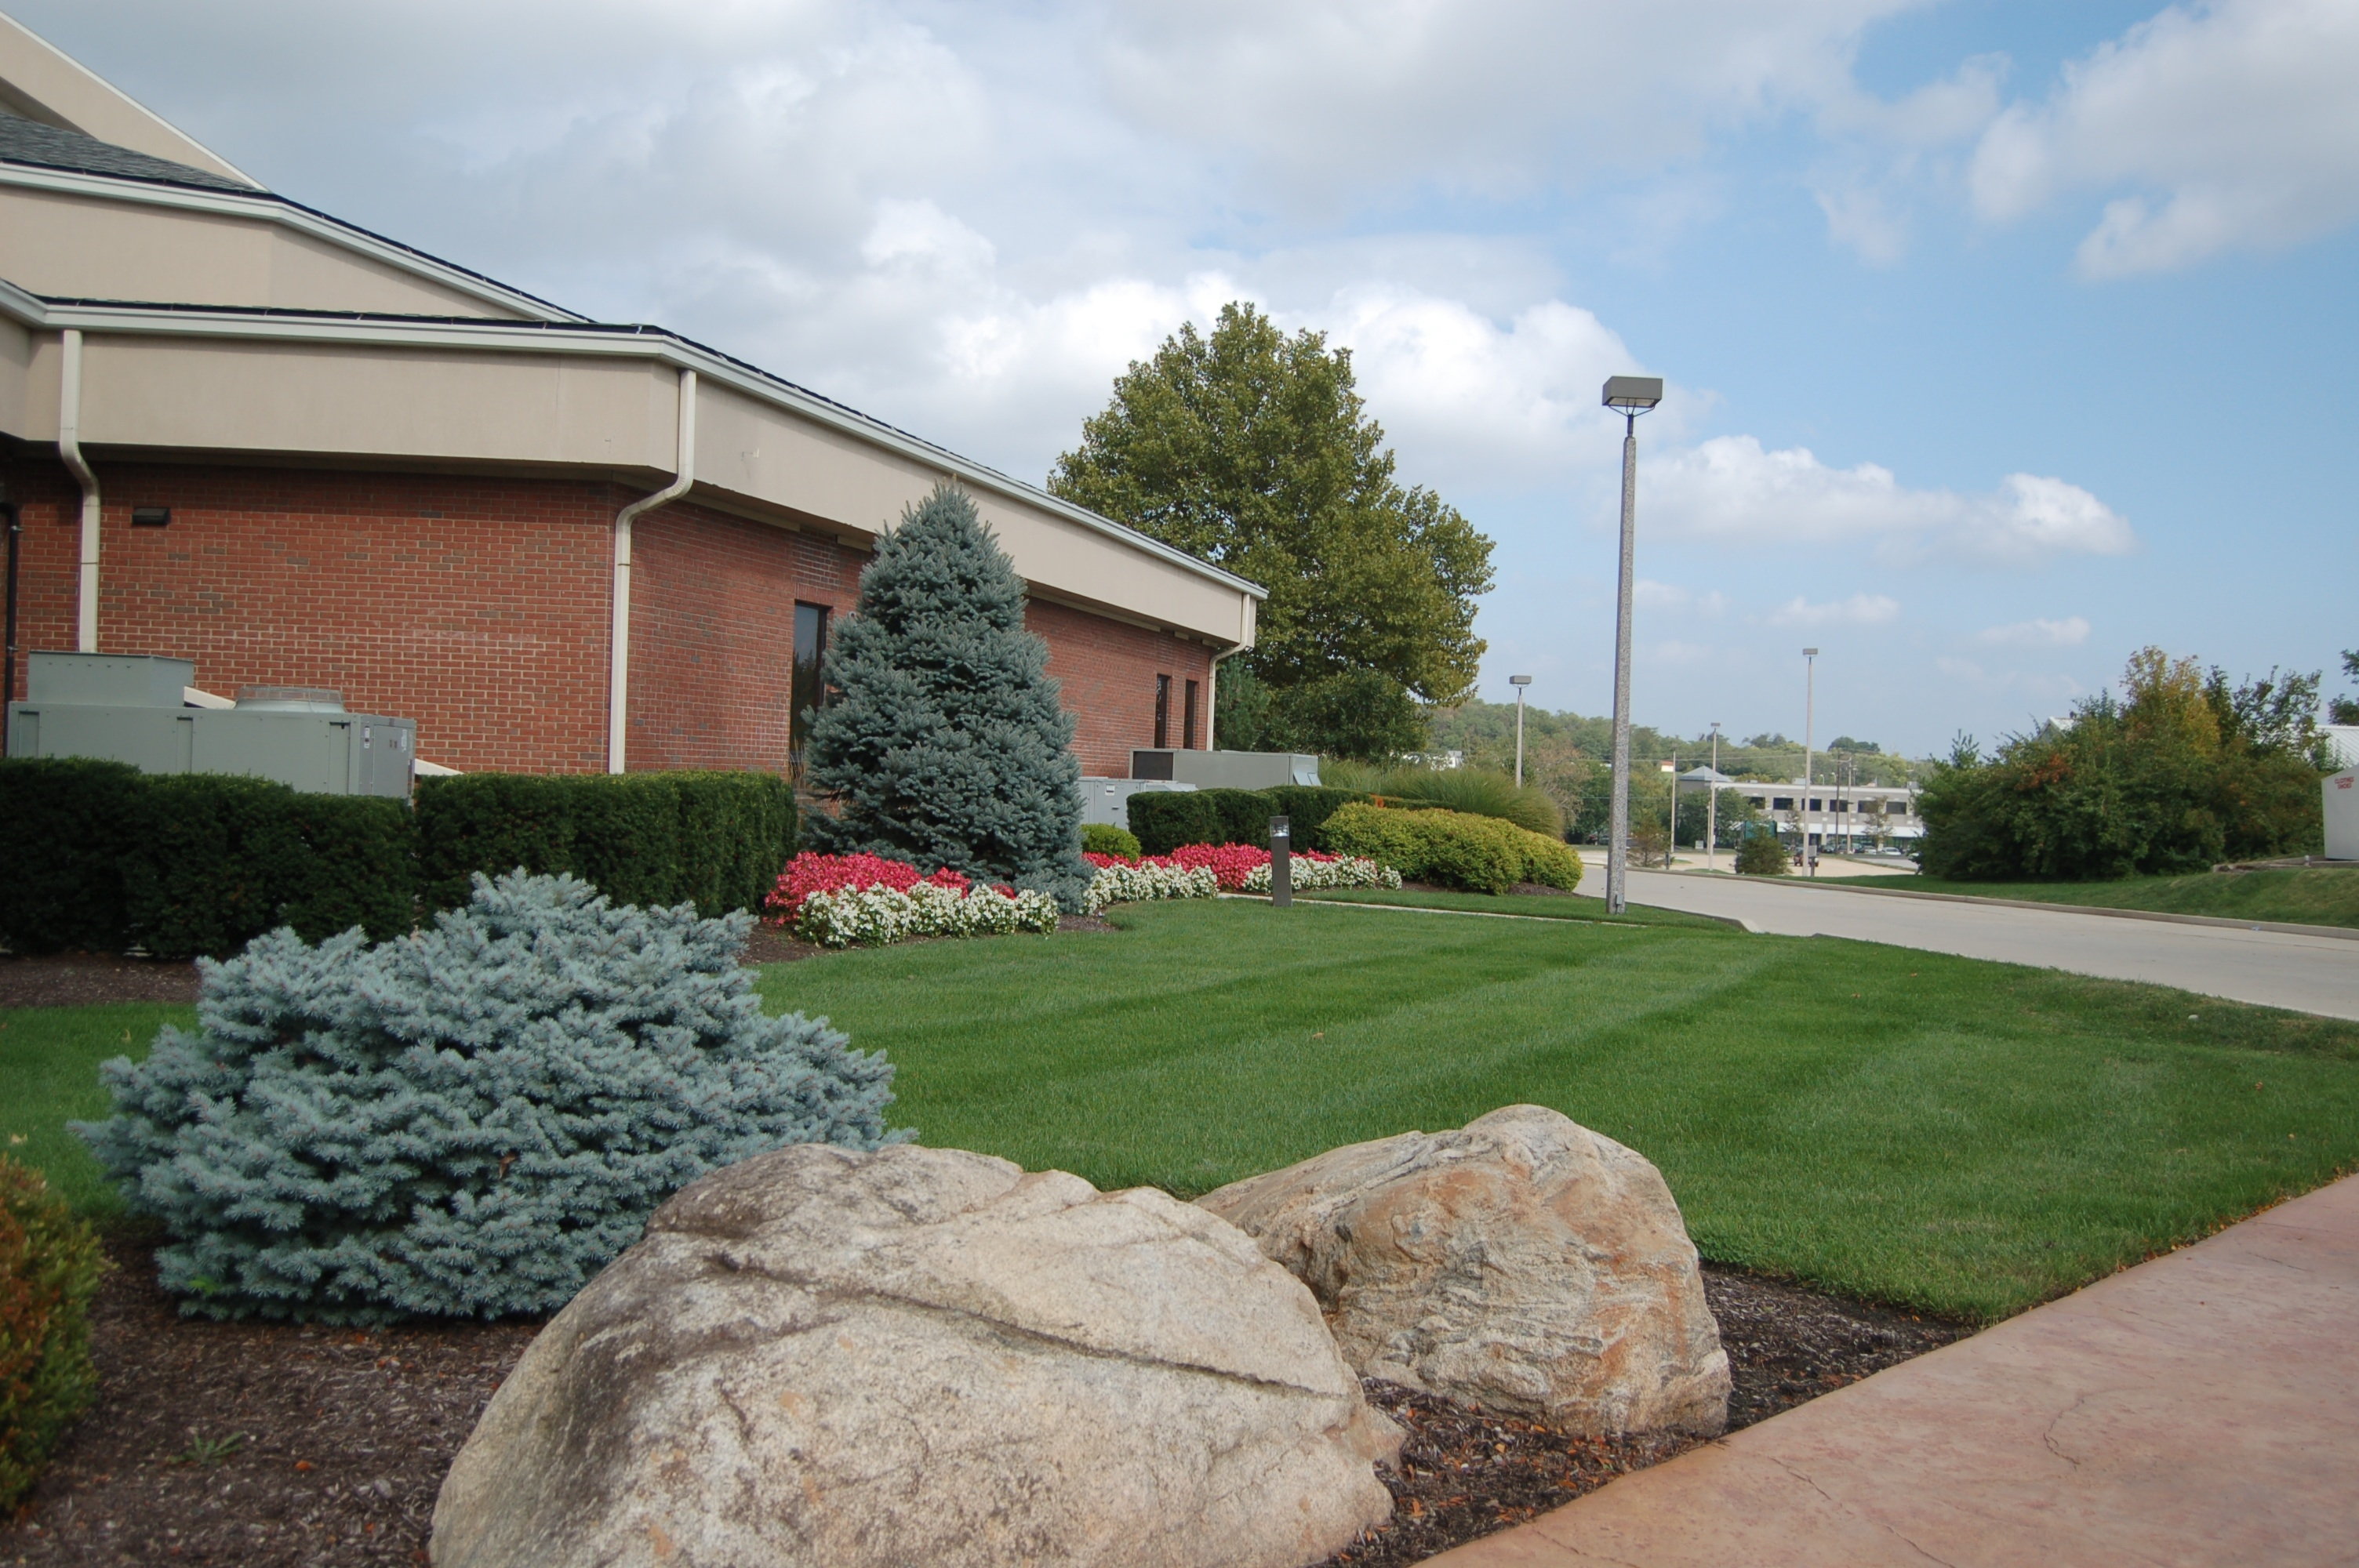 Lawn care tinkerturf for Commercial landscaping